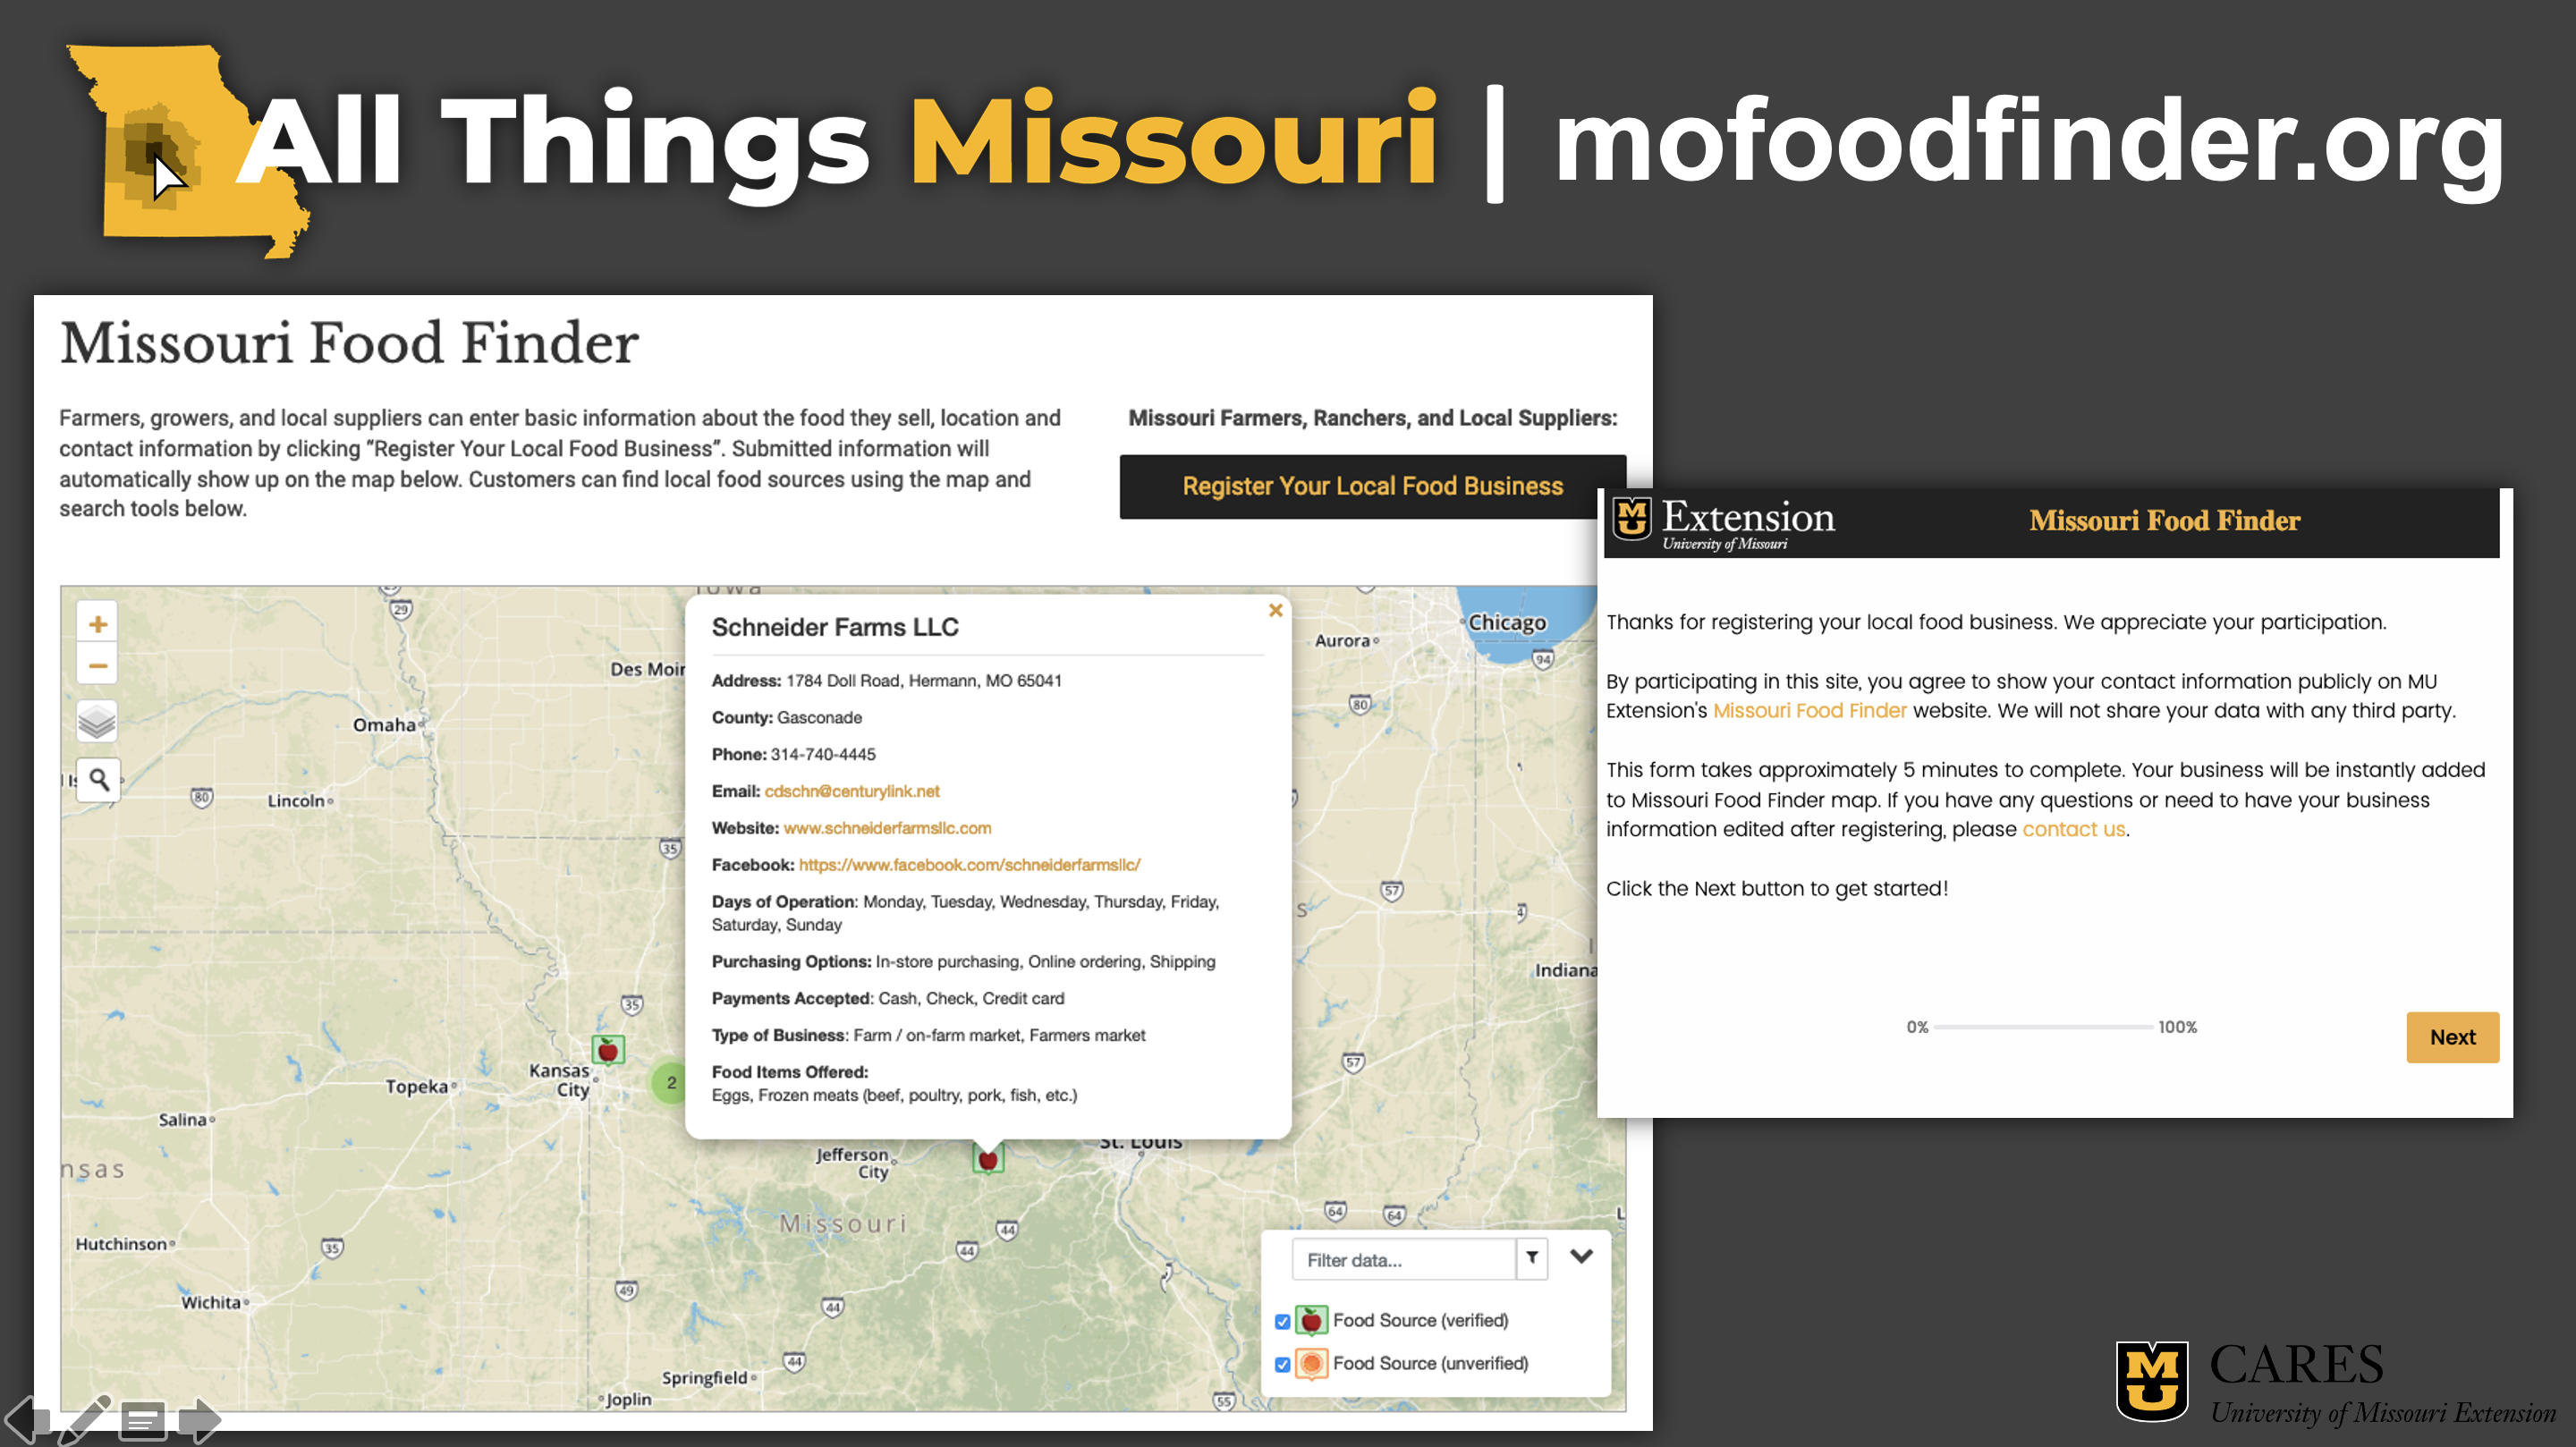 Missouri Food Finder- All Things Missouri.